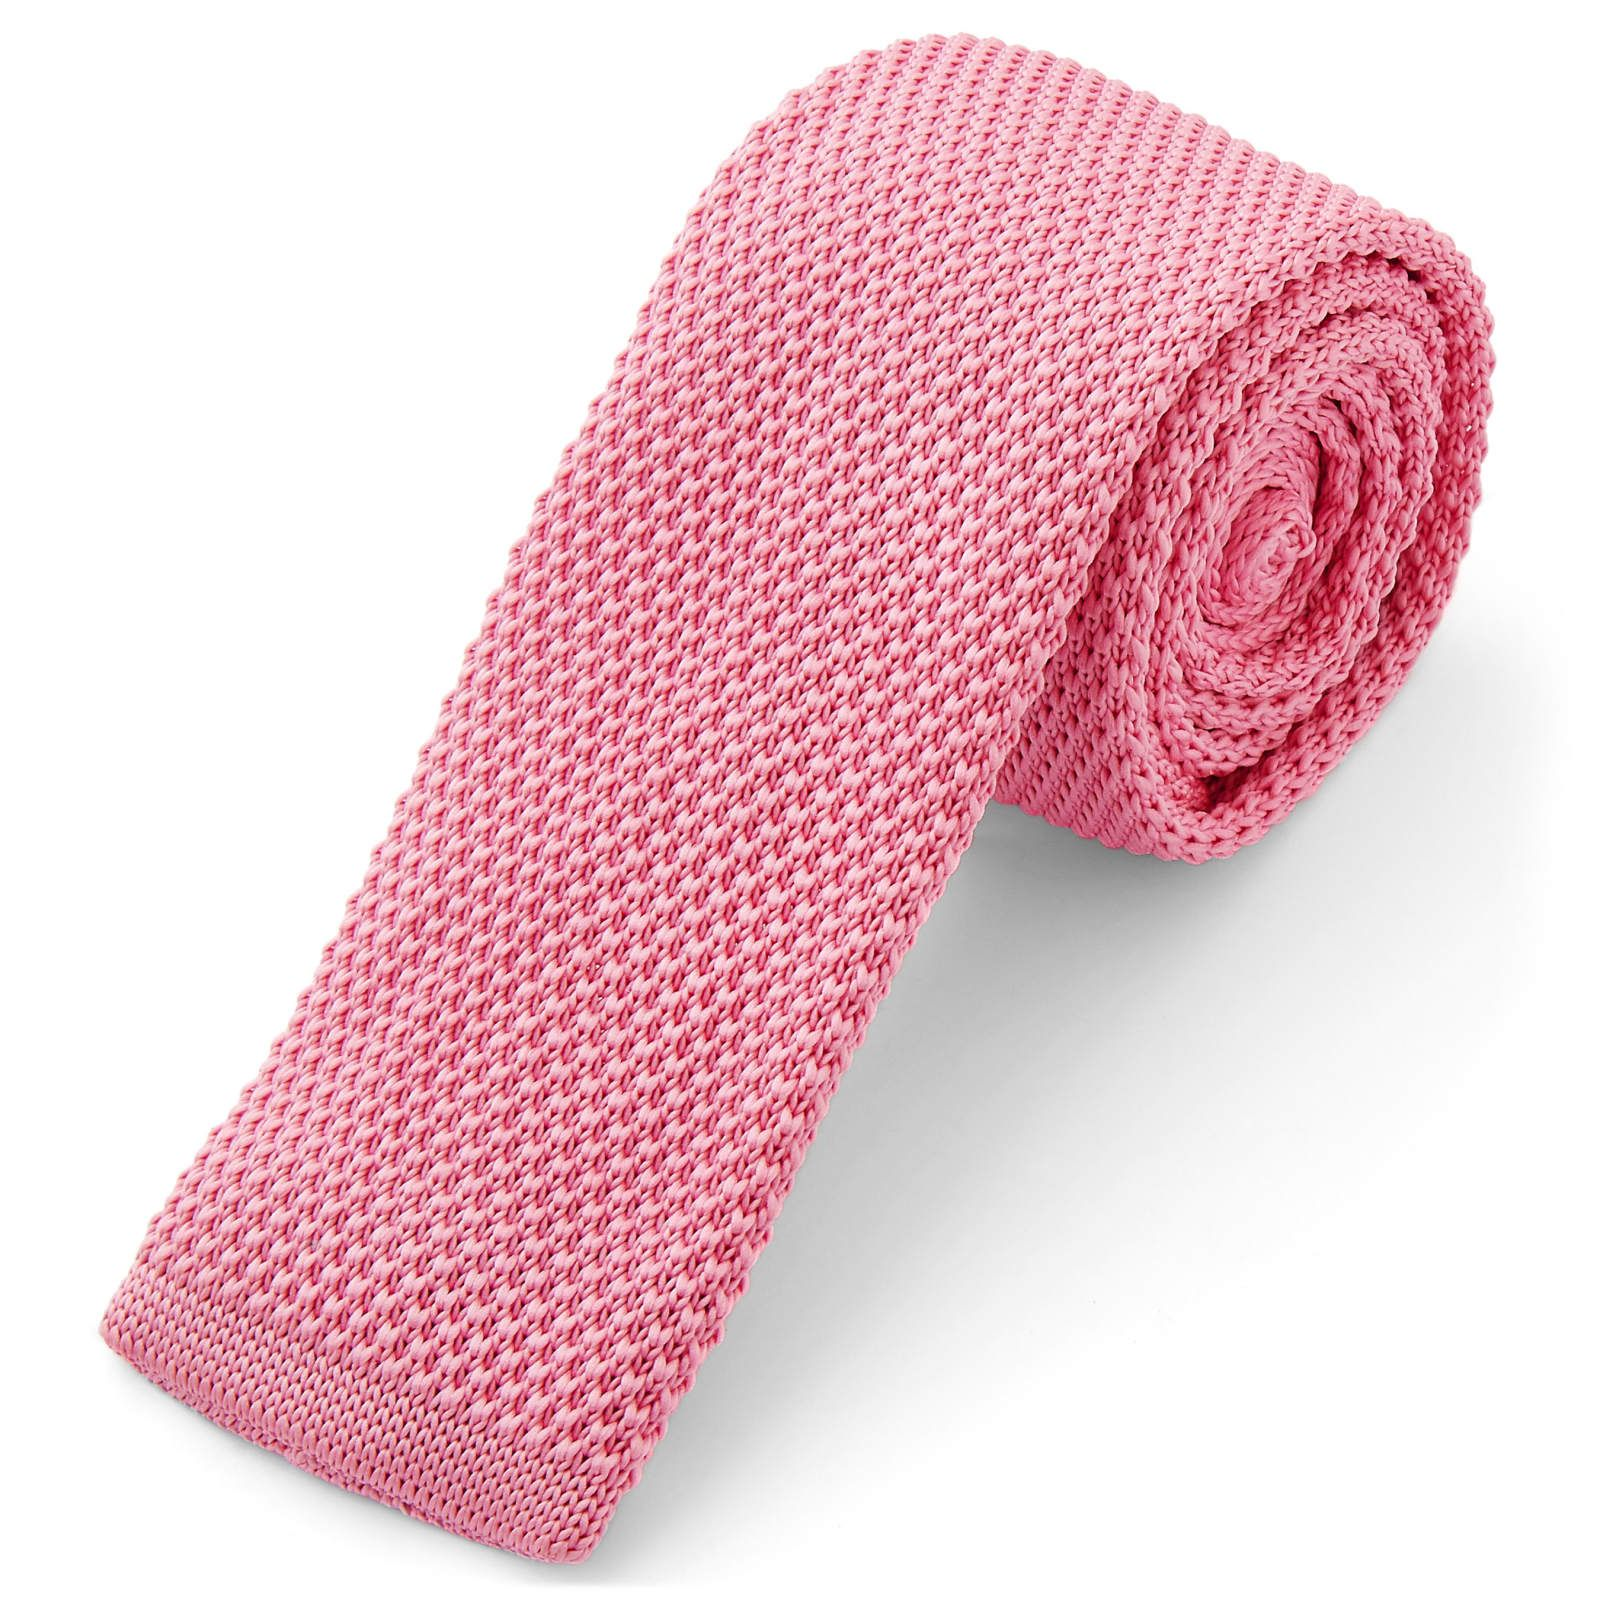 Photo of Hot Pink Knitted Tie | In stock! | Tailor Toki